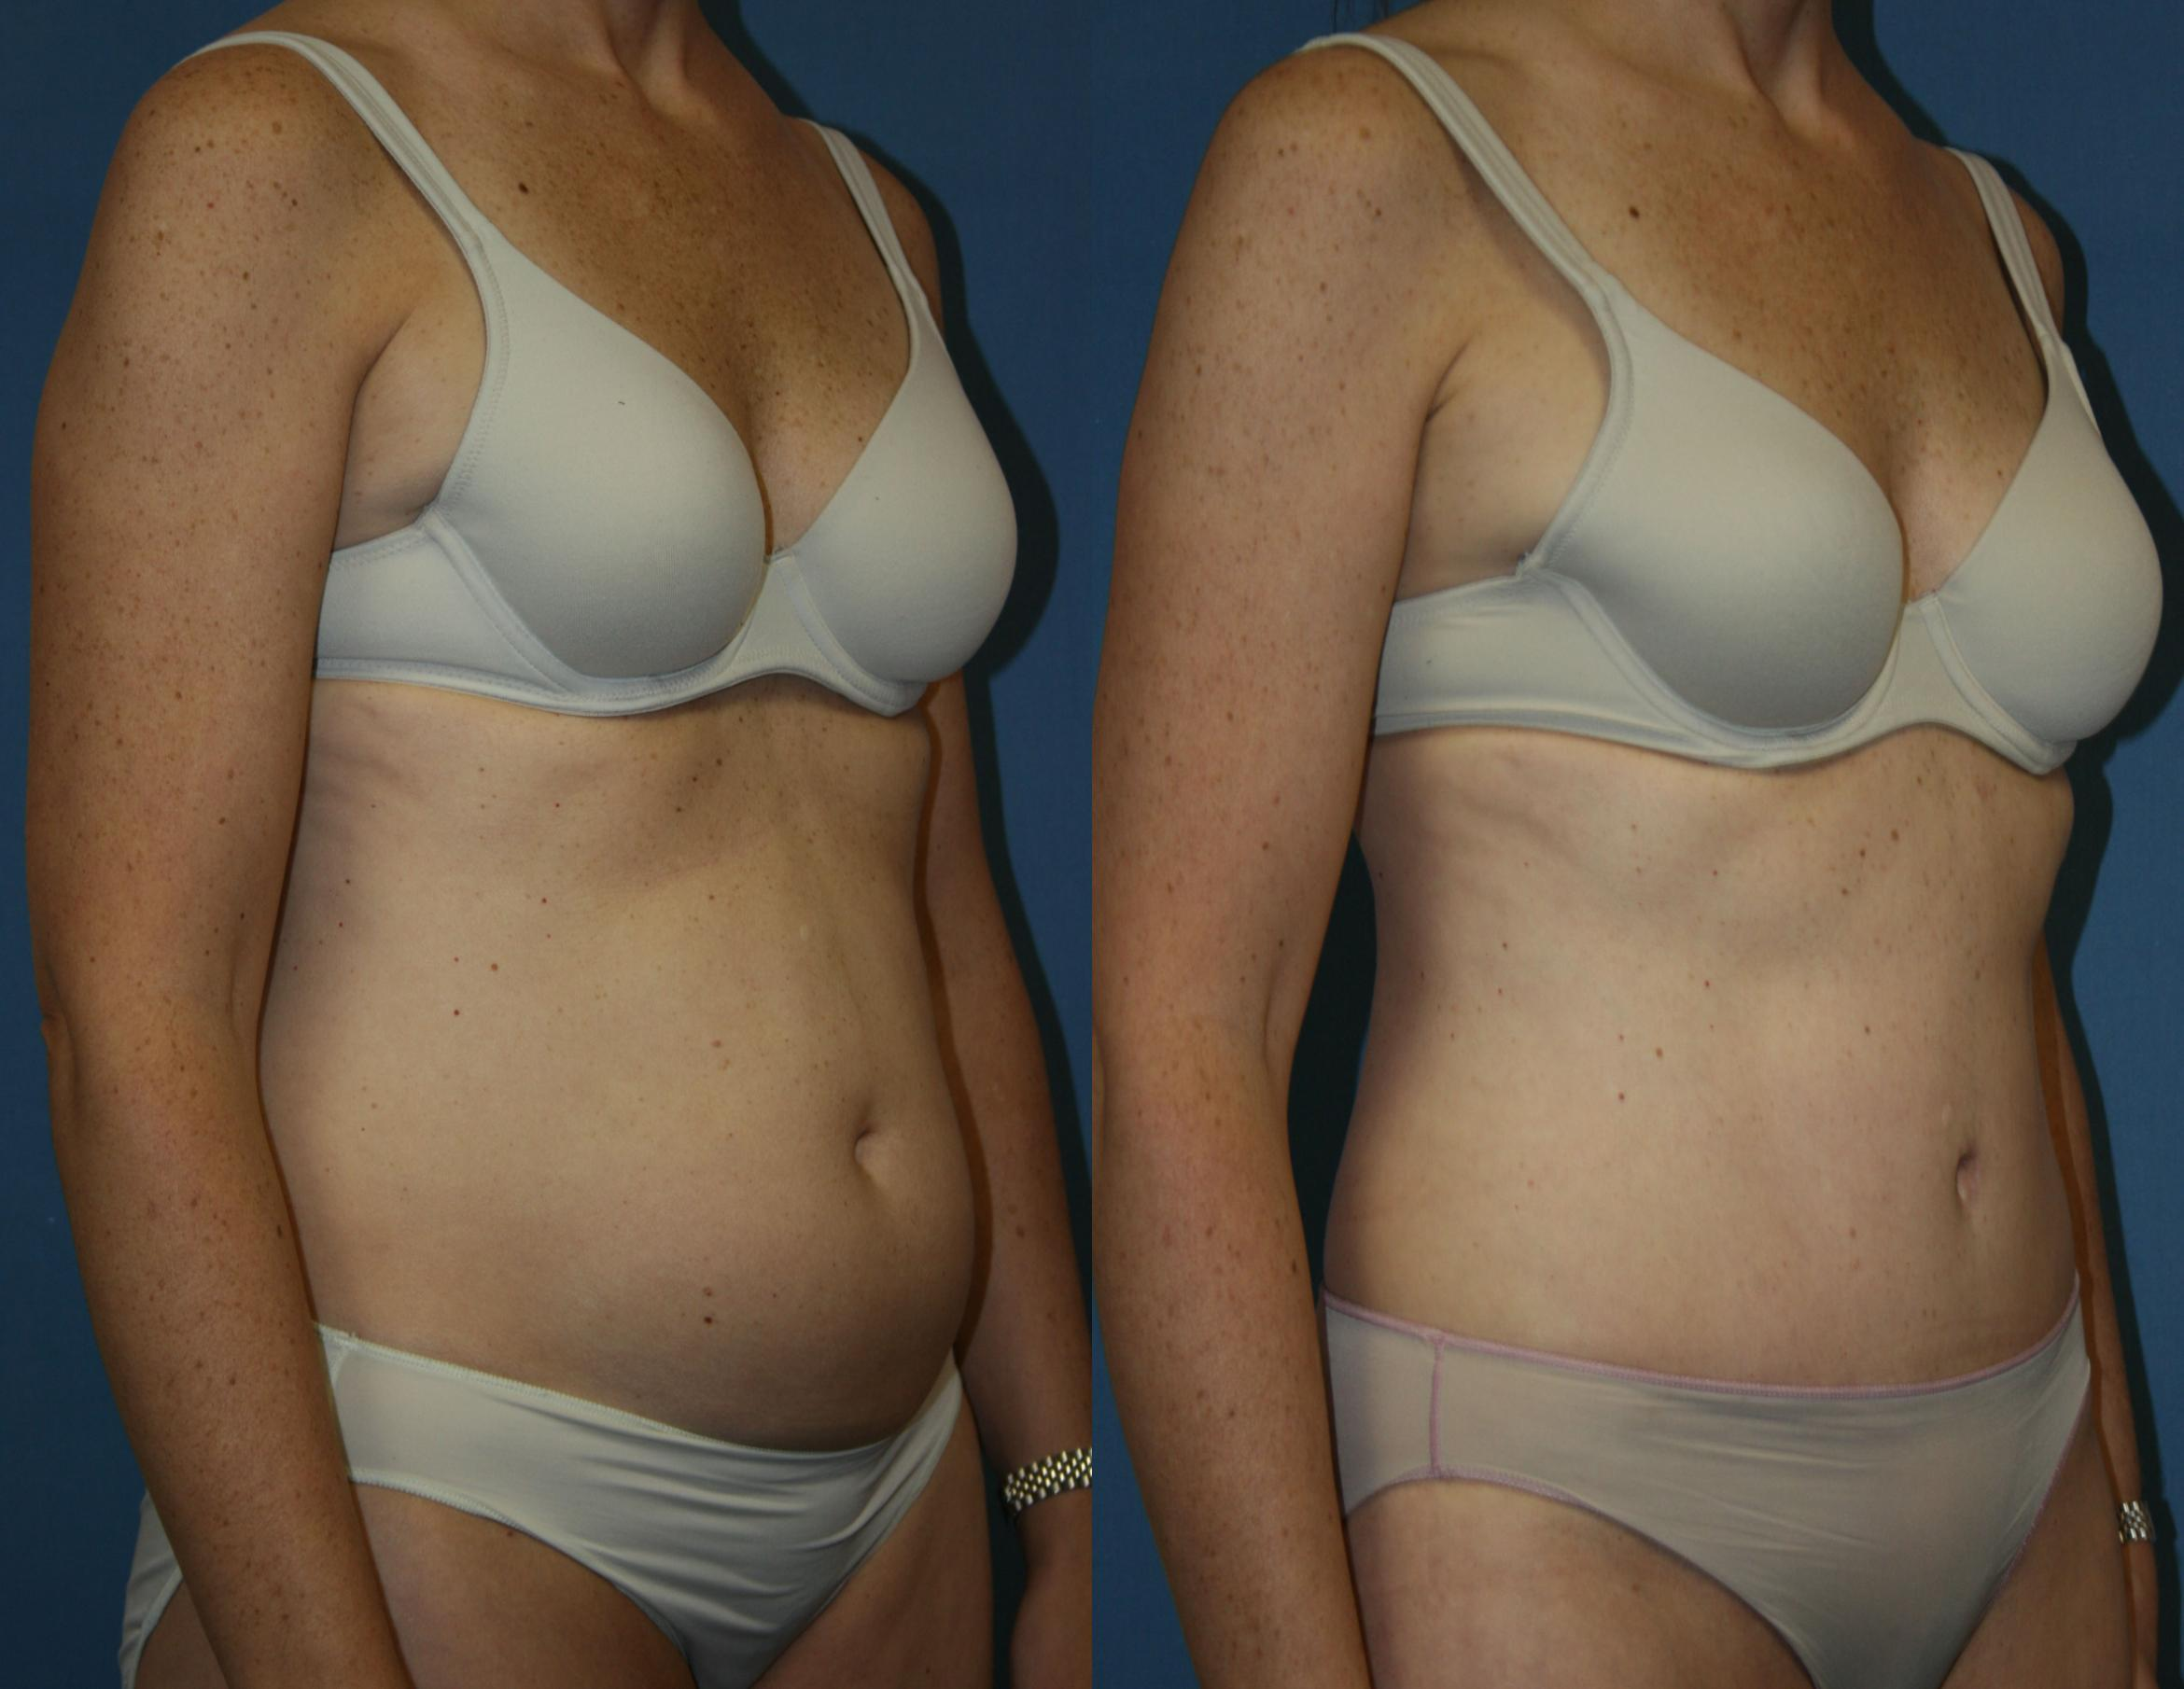 Tummy Tuck Case 39 Before & After View #2 | Downers Grove, IL | Dr. Sandeep Jejurikar